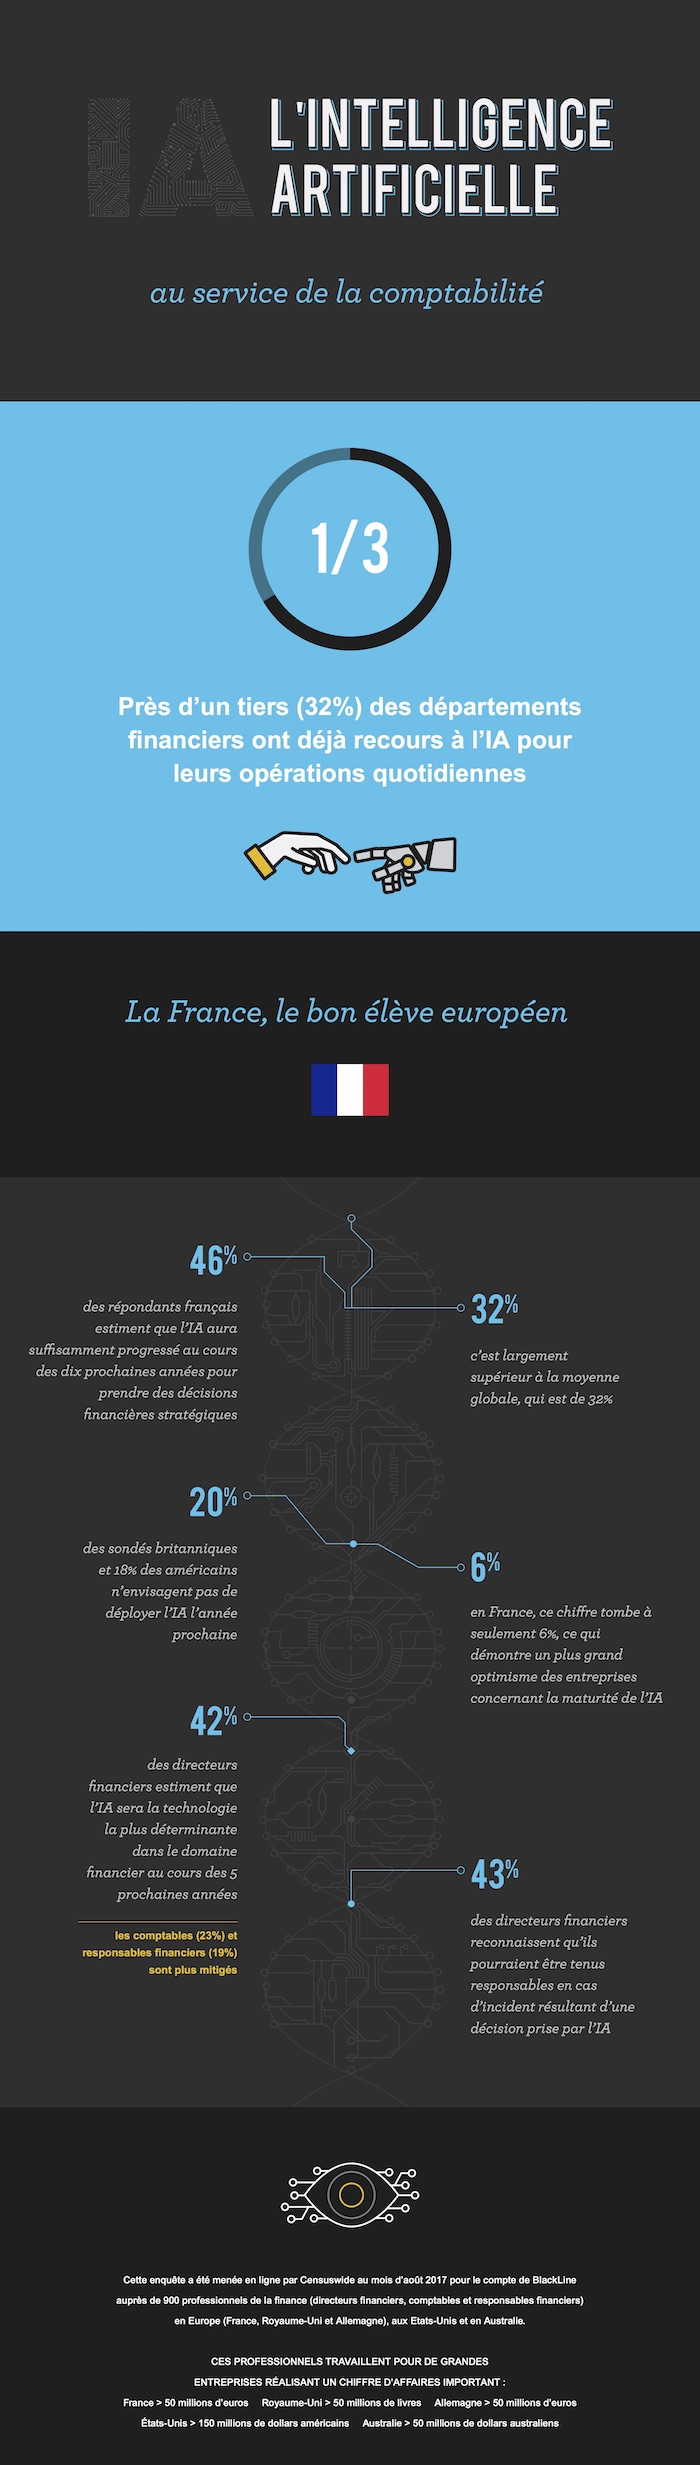 kaizo-infographic-french